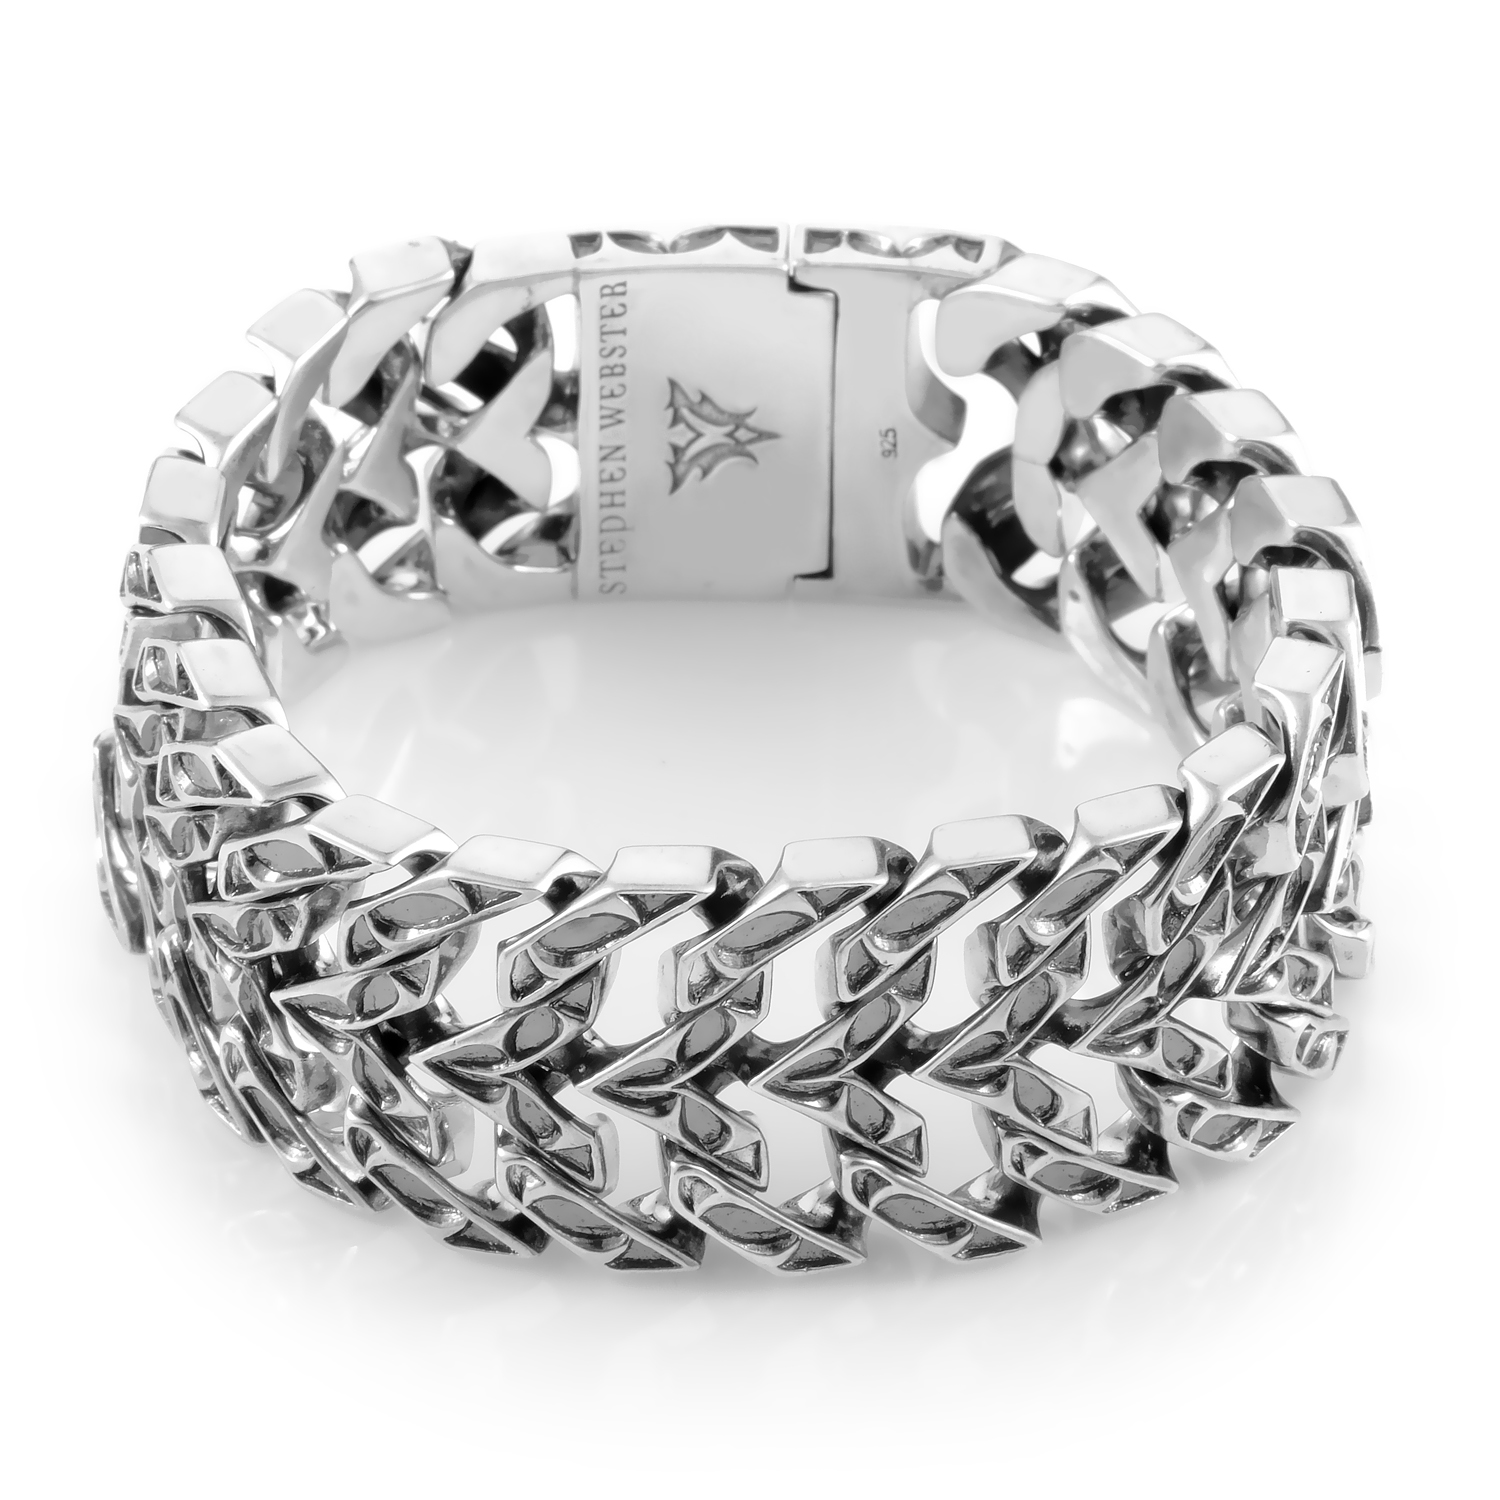 Thorn Sterling Silver Double Curb Bracelet